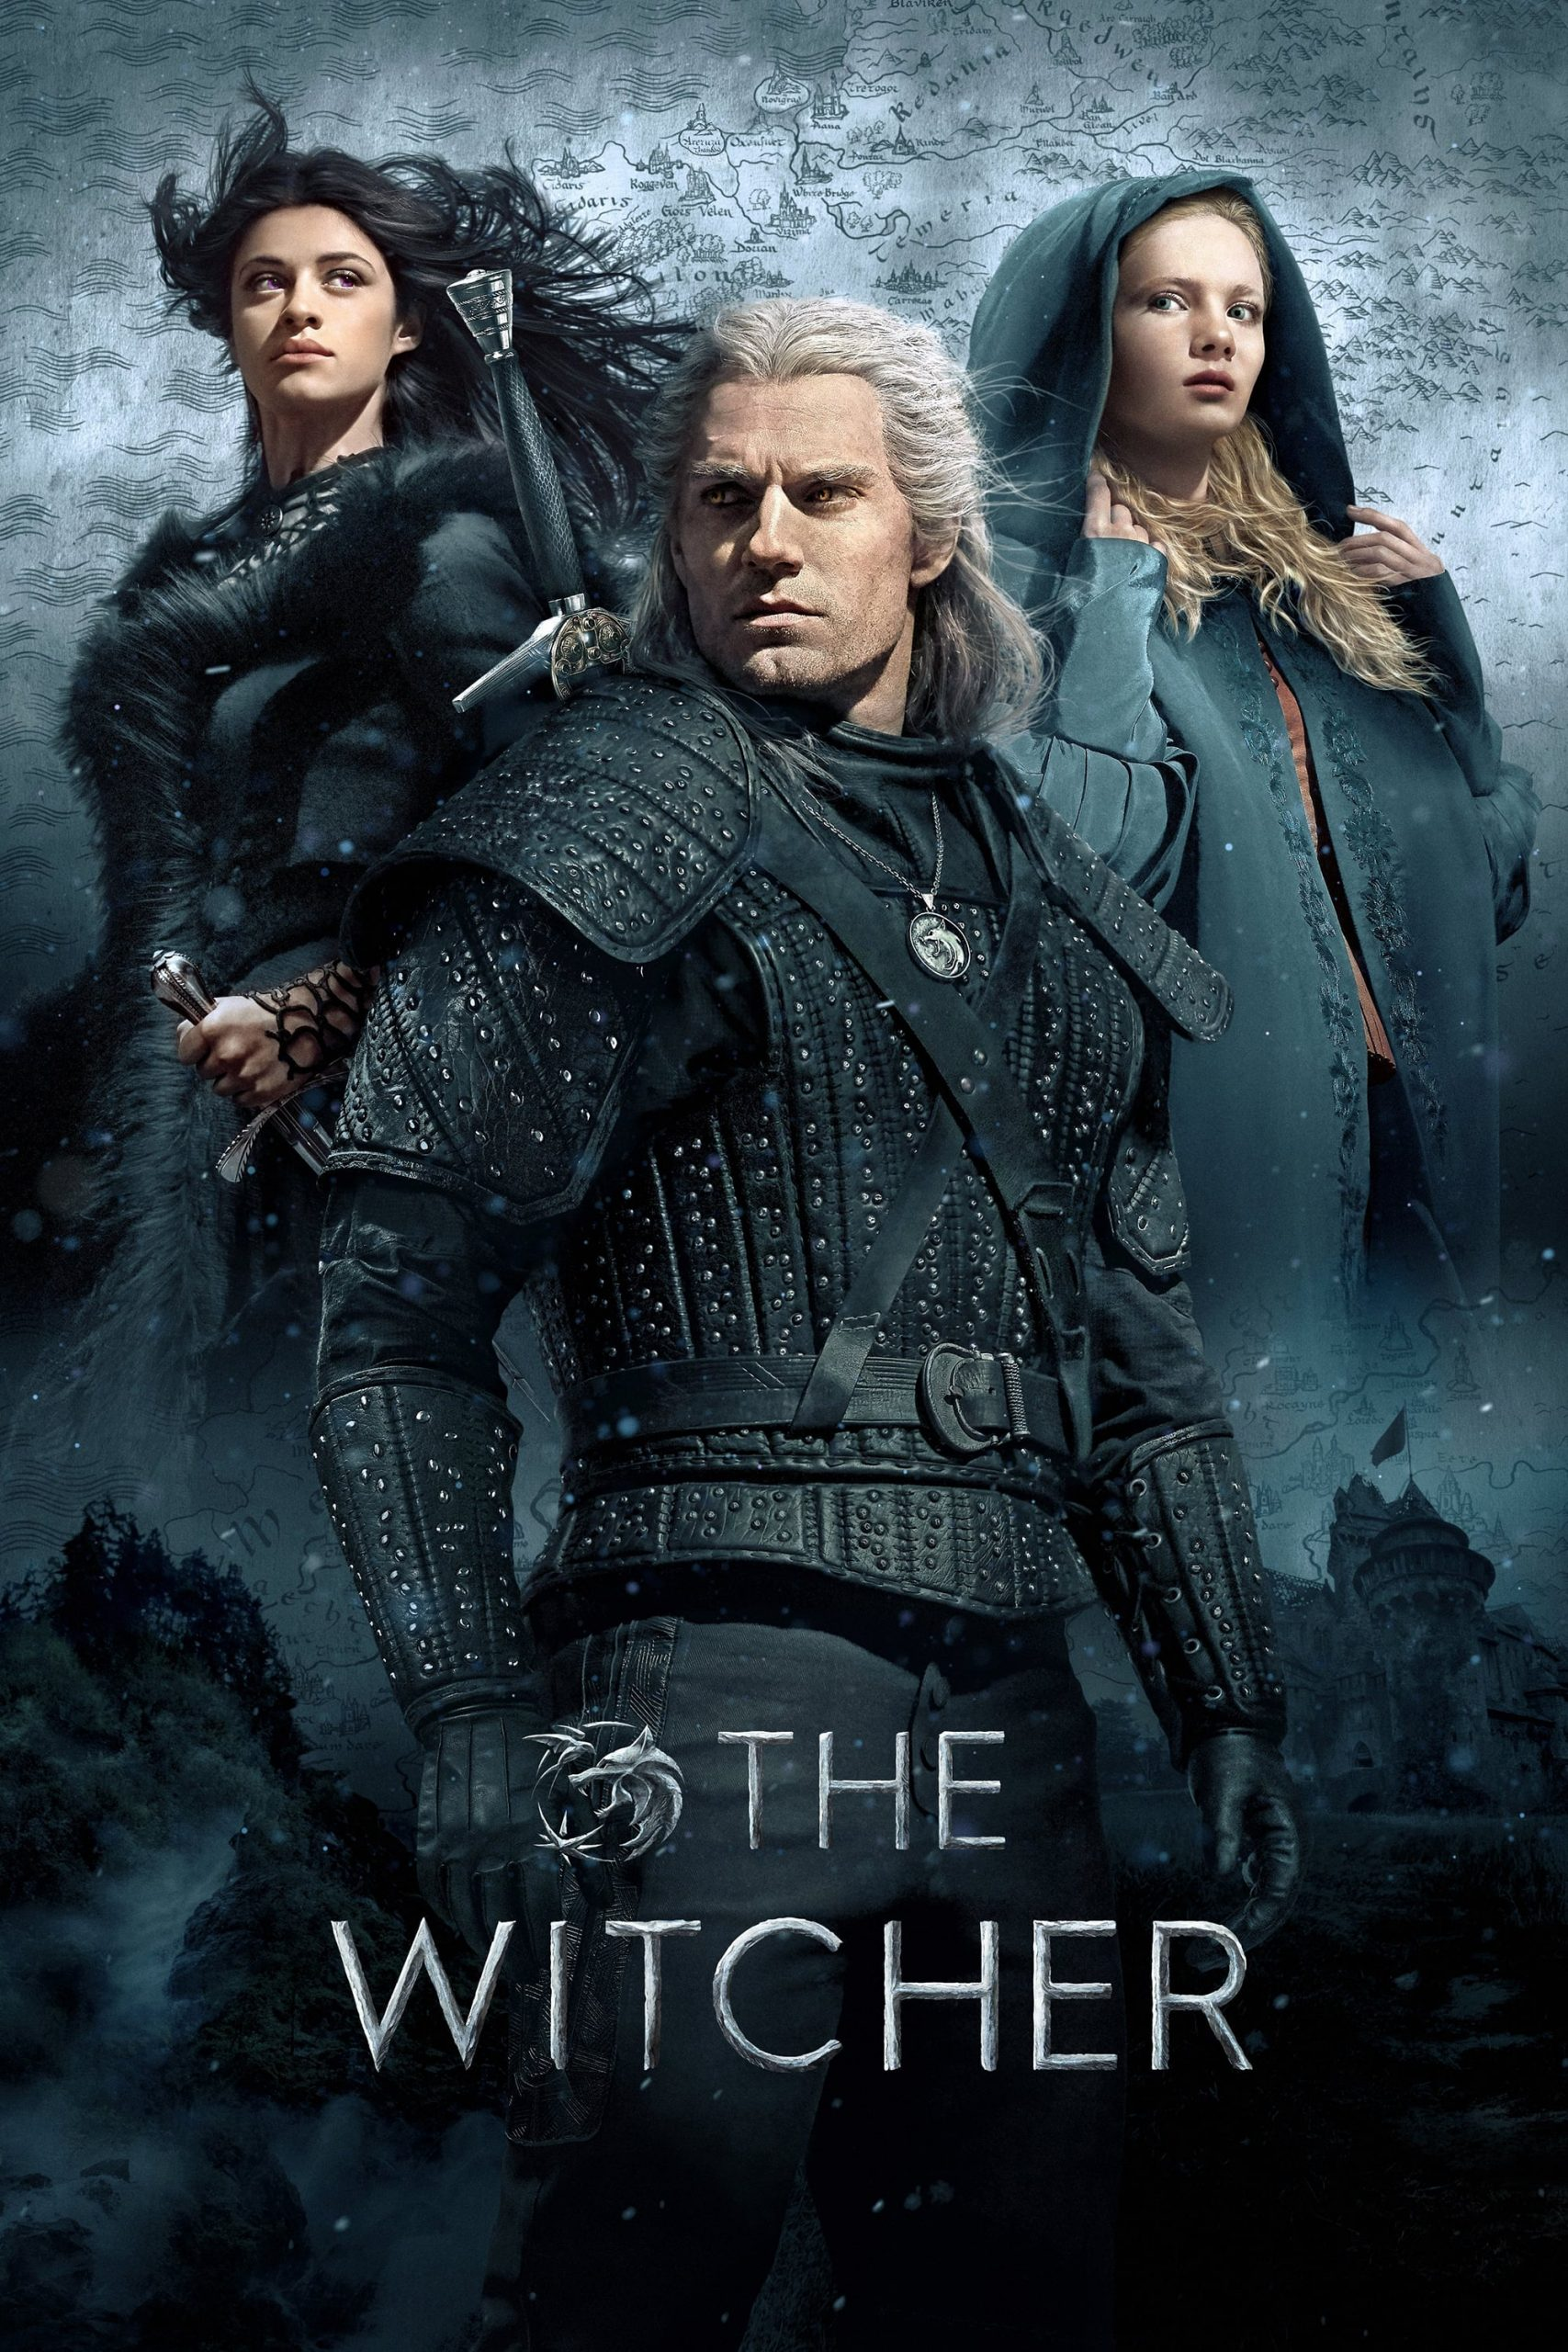 The Witcher S1 EP5 (2019) Subtitle Indonesia